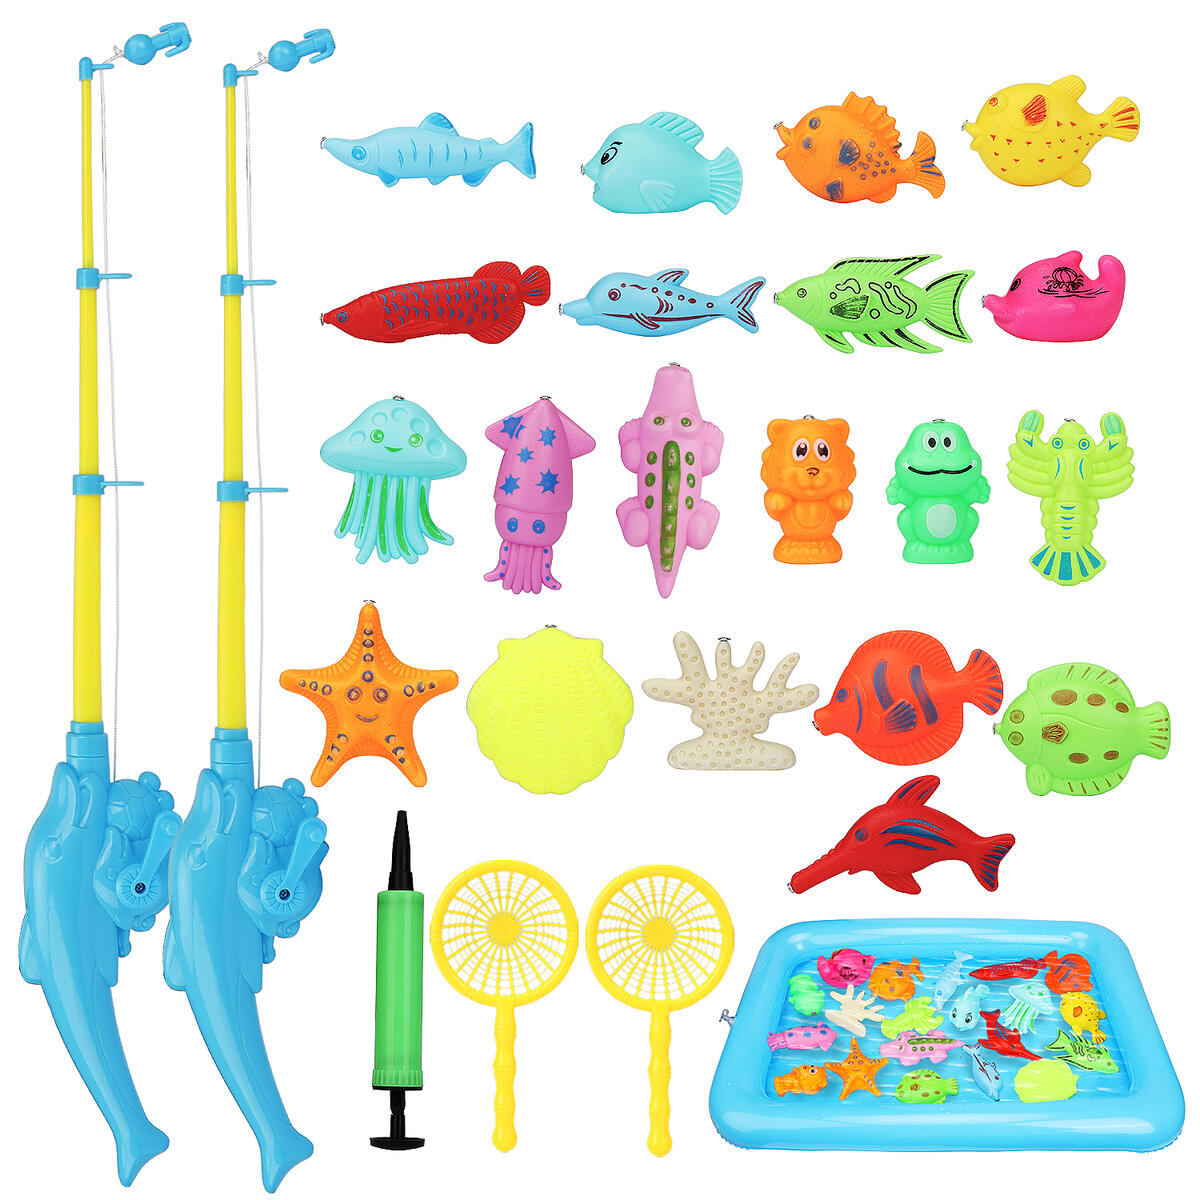 Kids Magnetic Fishing Game - with Magnetic Kids Fishing Pole, Floating Toy Fish, and Inflatable Play Area - Outdoor Fishing Toys - Bath Toy for 3 4 5 Boys Girls Toddlers